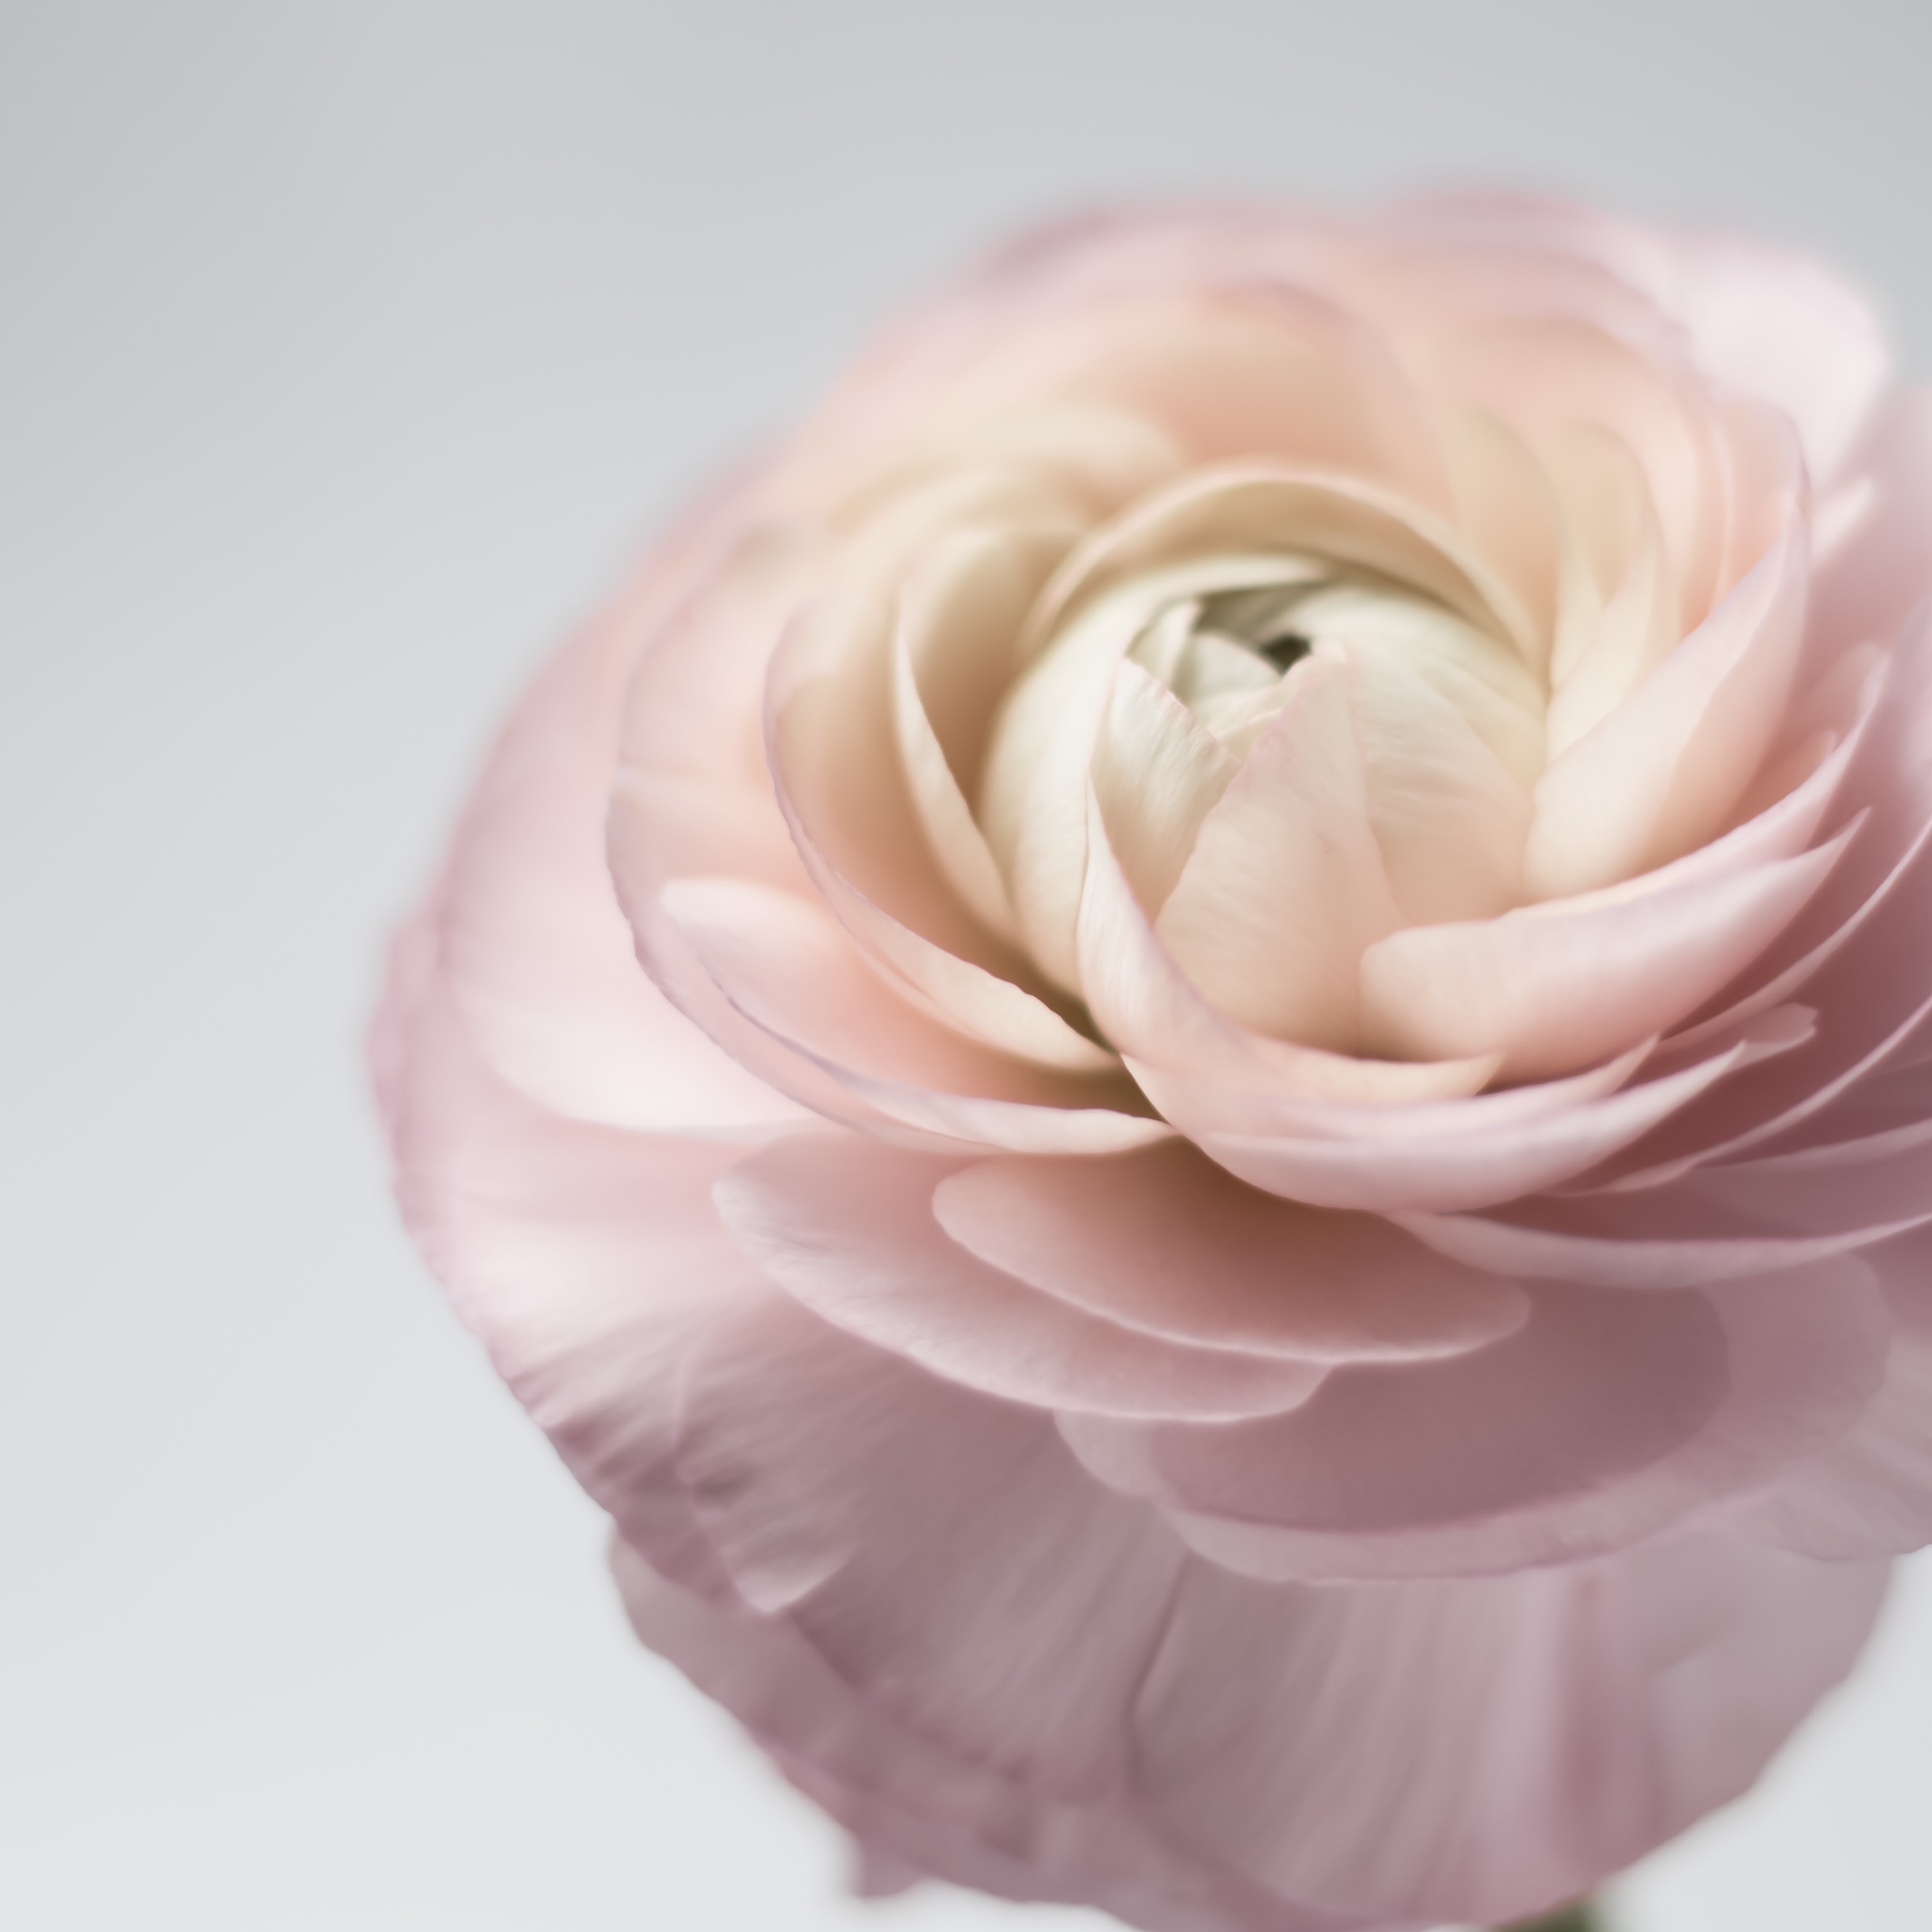 shallow focus photography of white-and-pink petaled flower